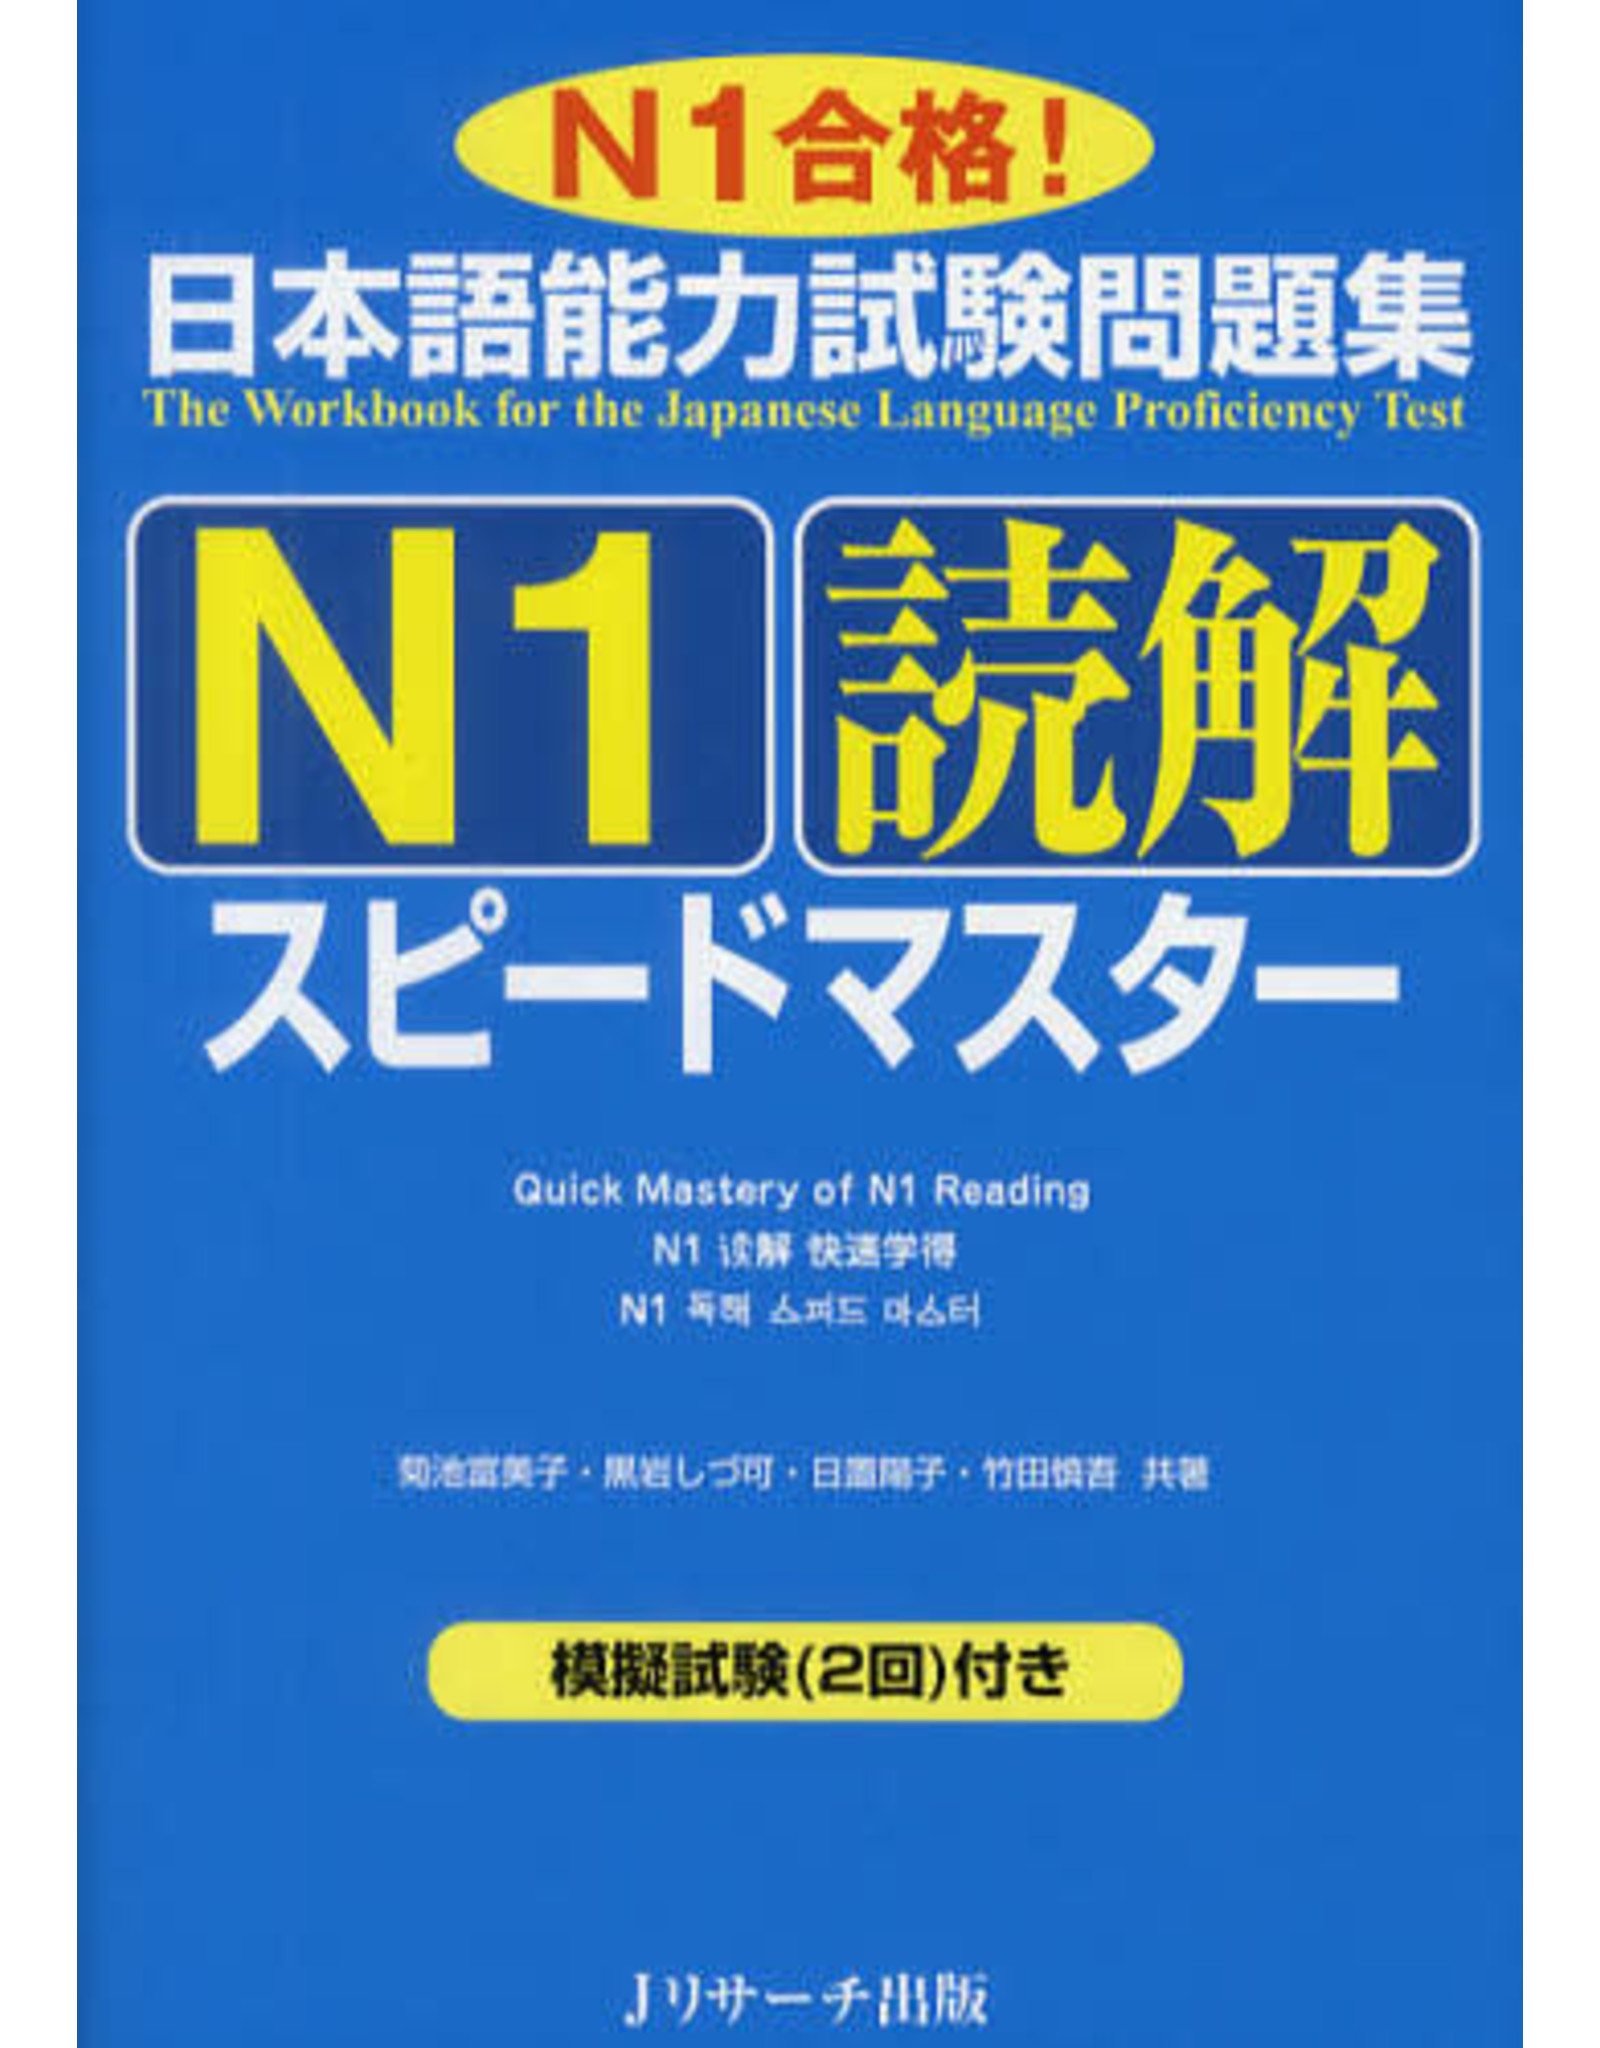 J RESEARCH QUICK MASTERY OF N1 READING